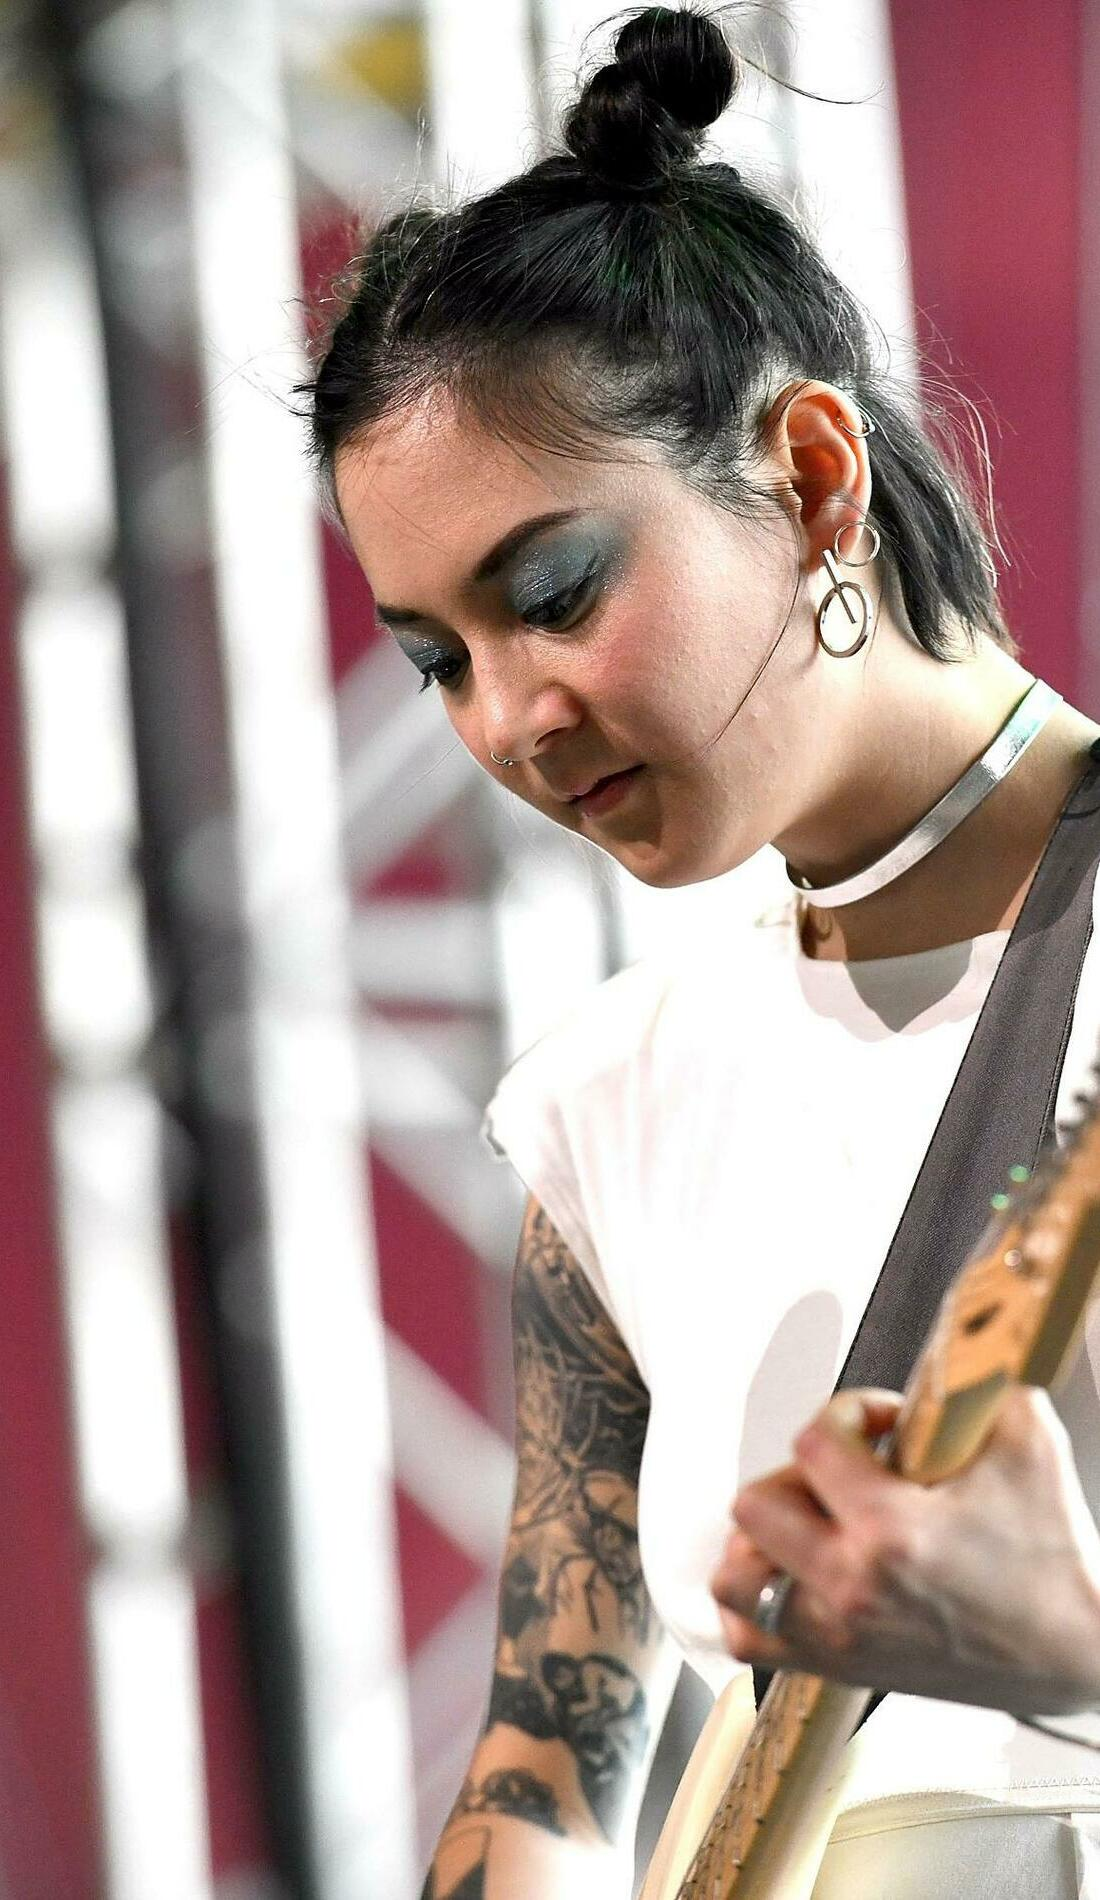 A Japanese Breakfast live event